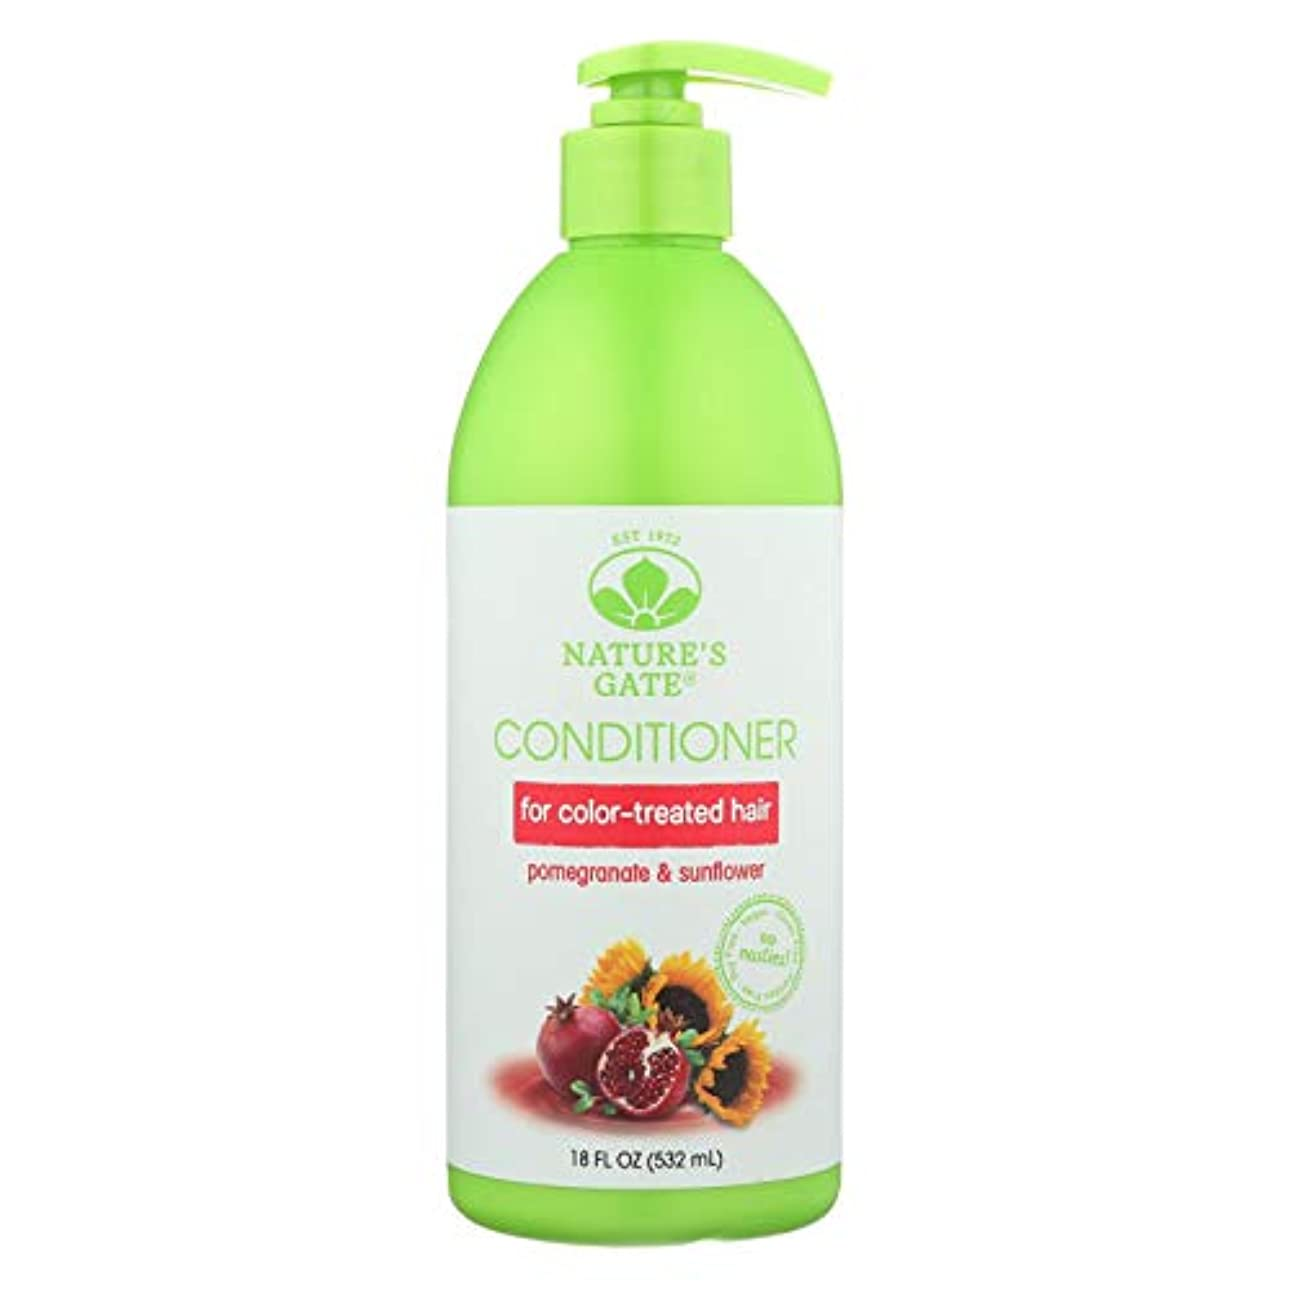 前シェフ罰Nature's Gate, Conditioner, Hair Defense, Pomegranate Sunflower, 18 fl oz (532 ml)